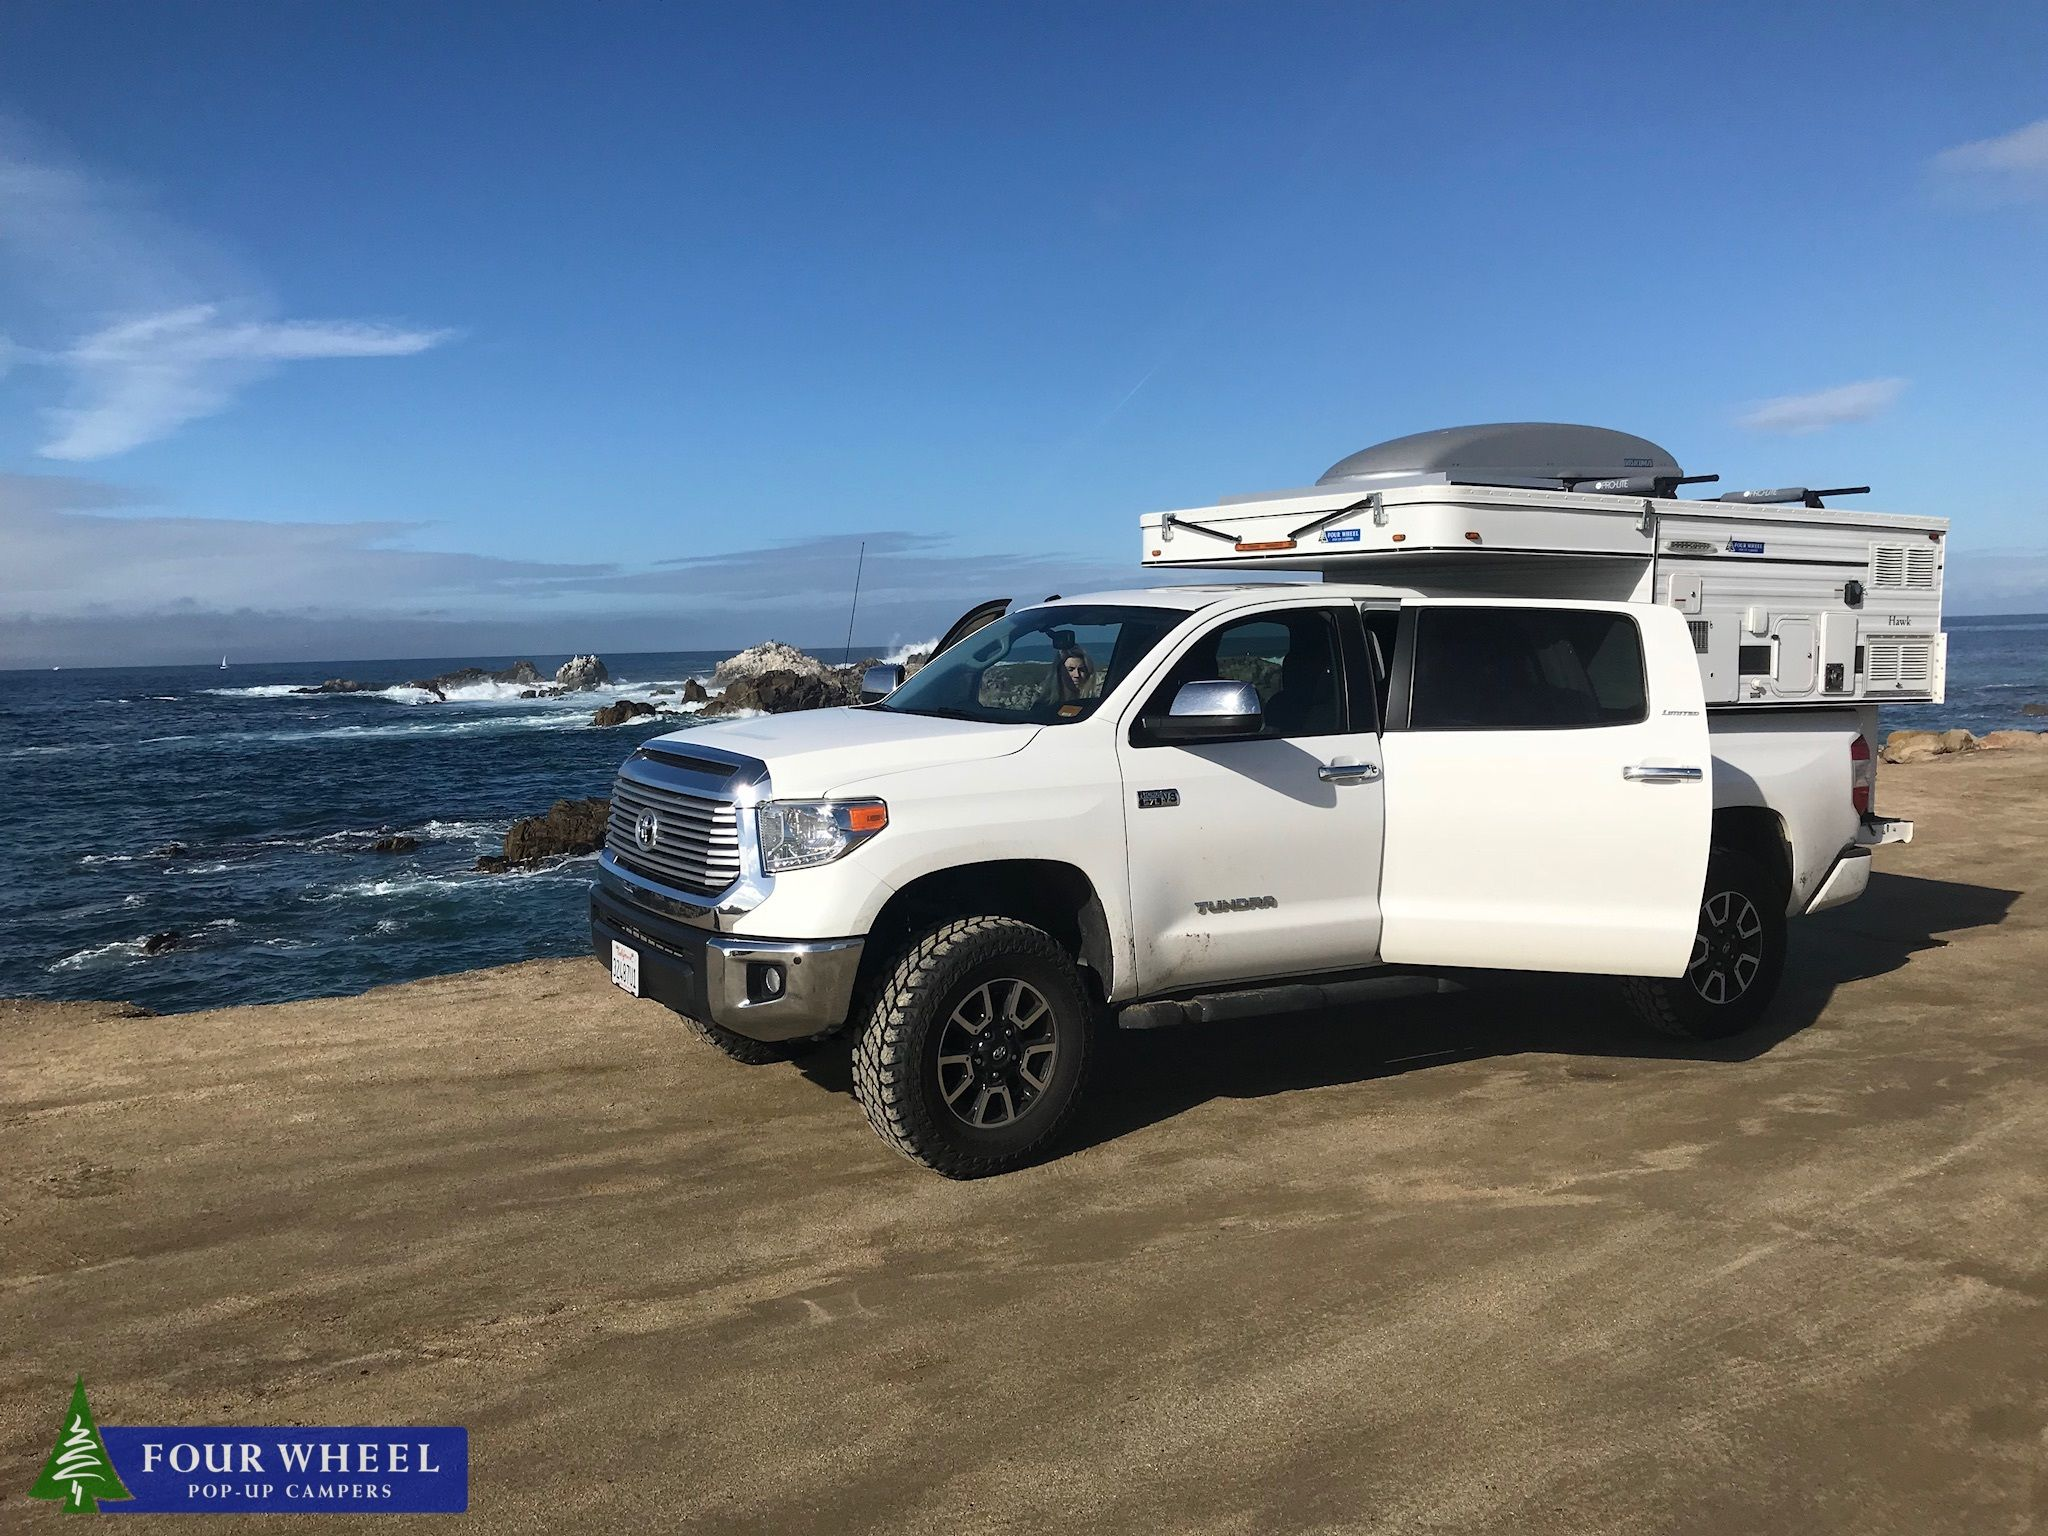 Overland Campers On A Toyota Tundra With A Gorgeous Ocean